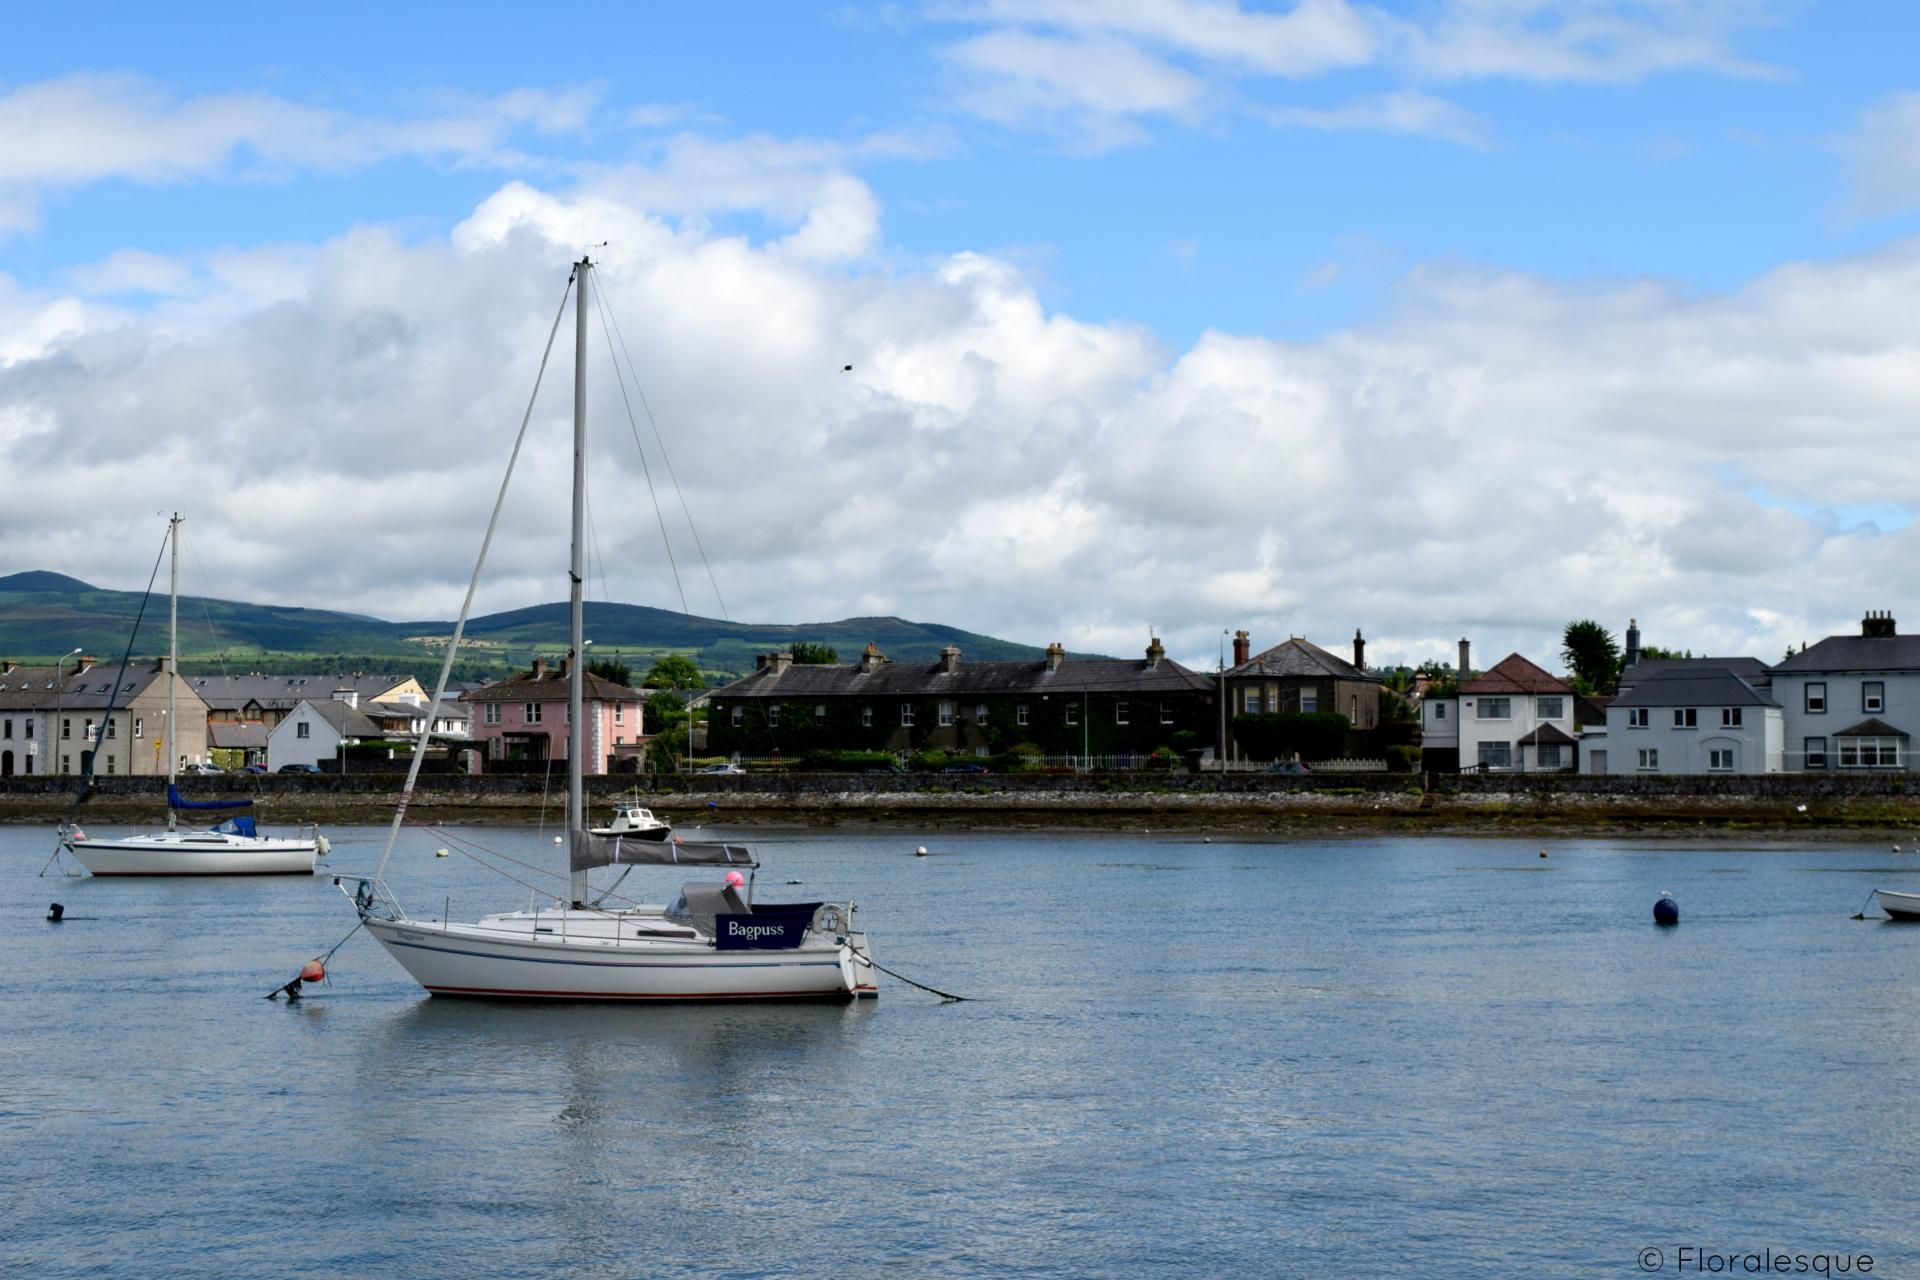 A morning spent in Dungarven Floralesque